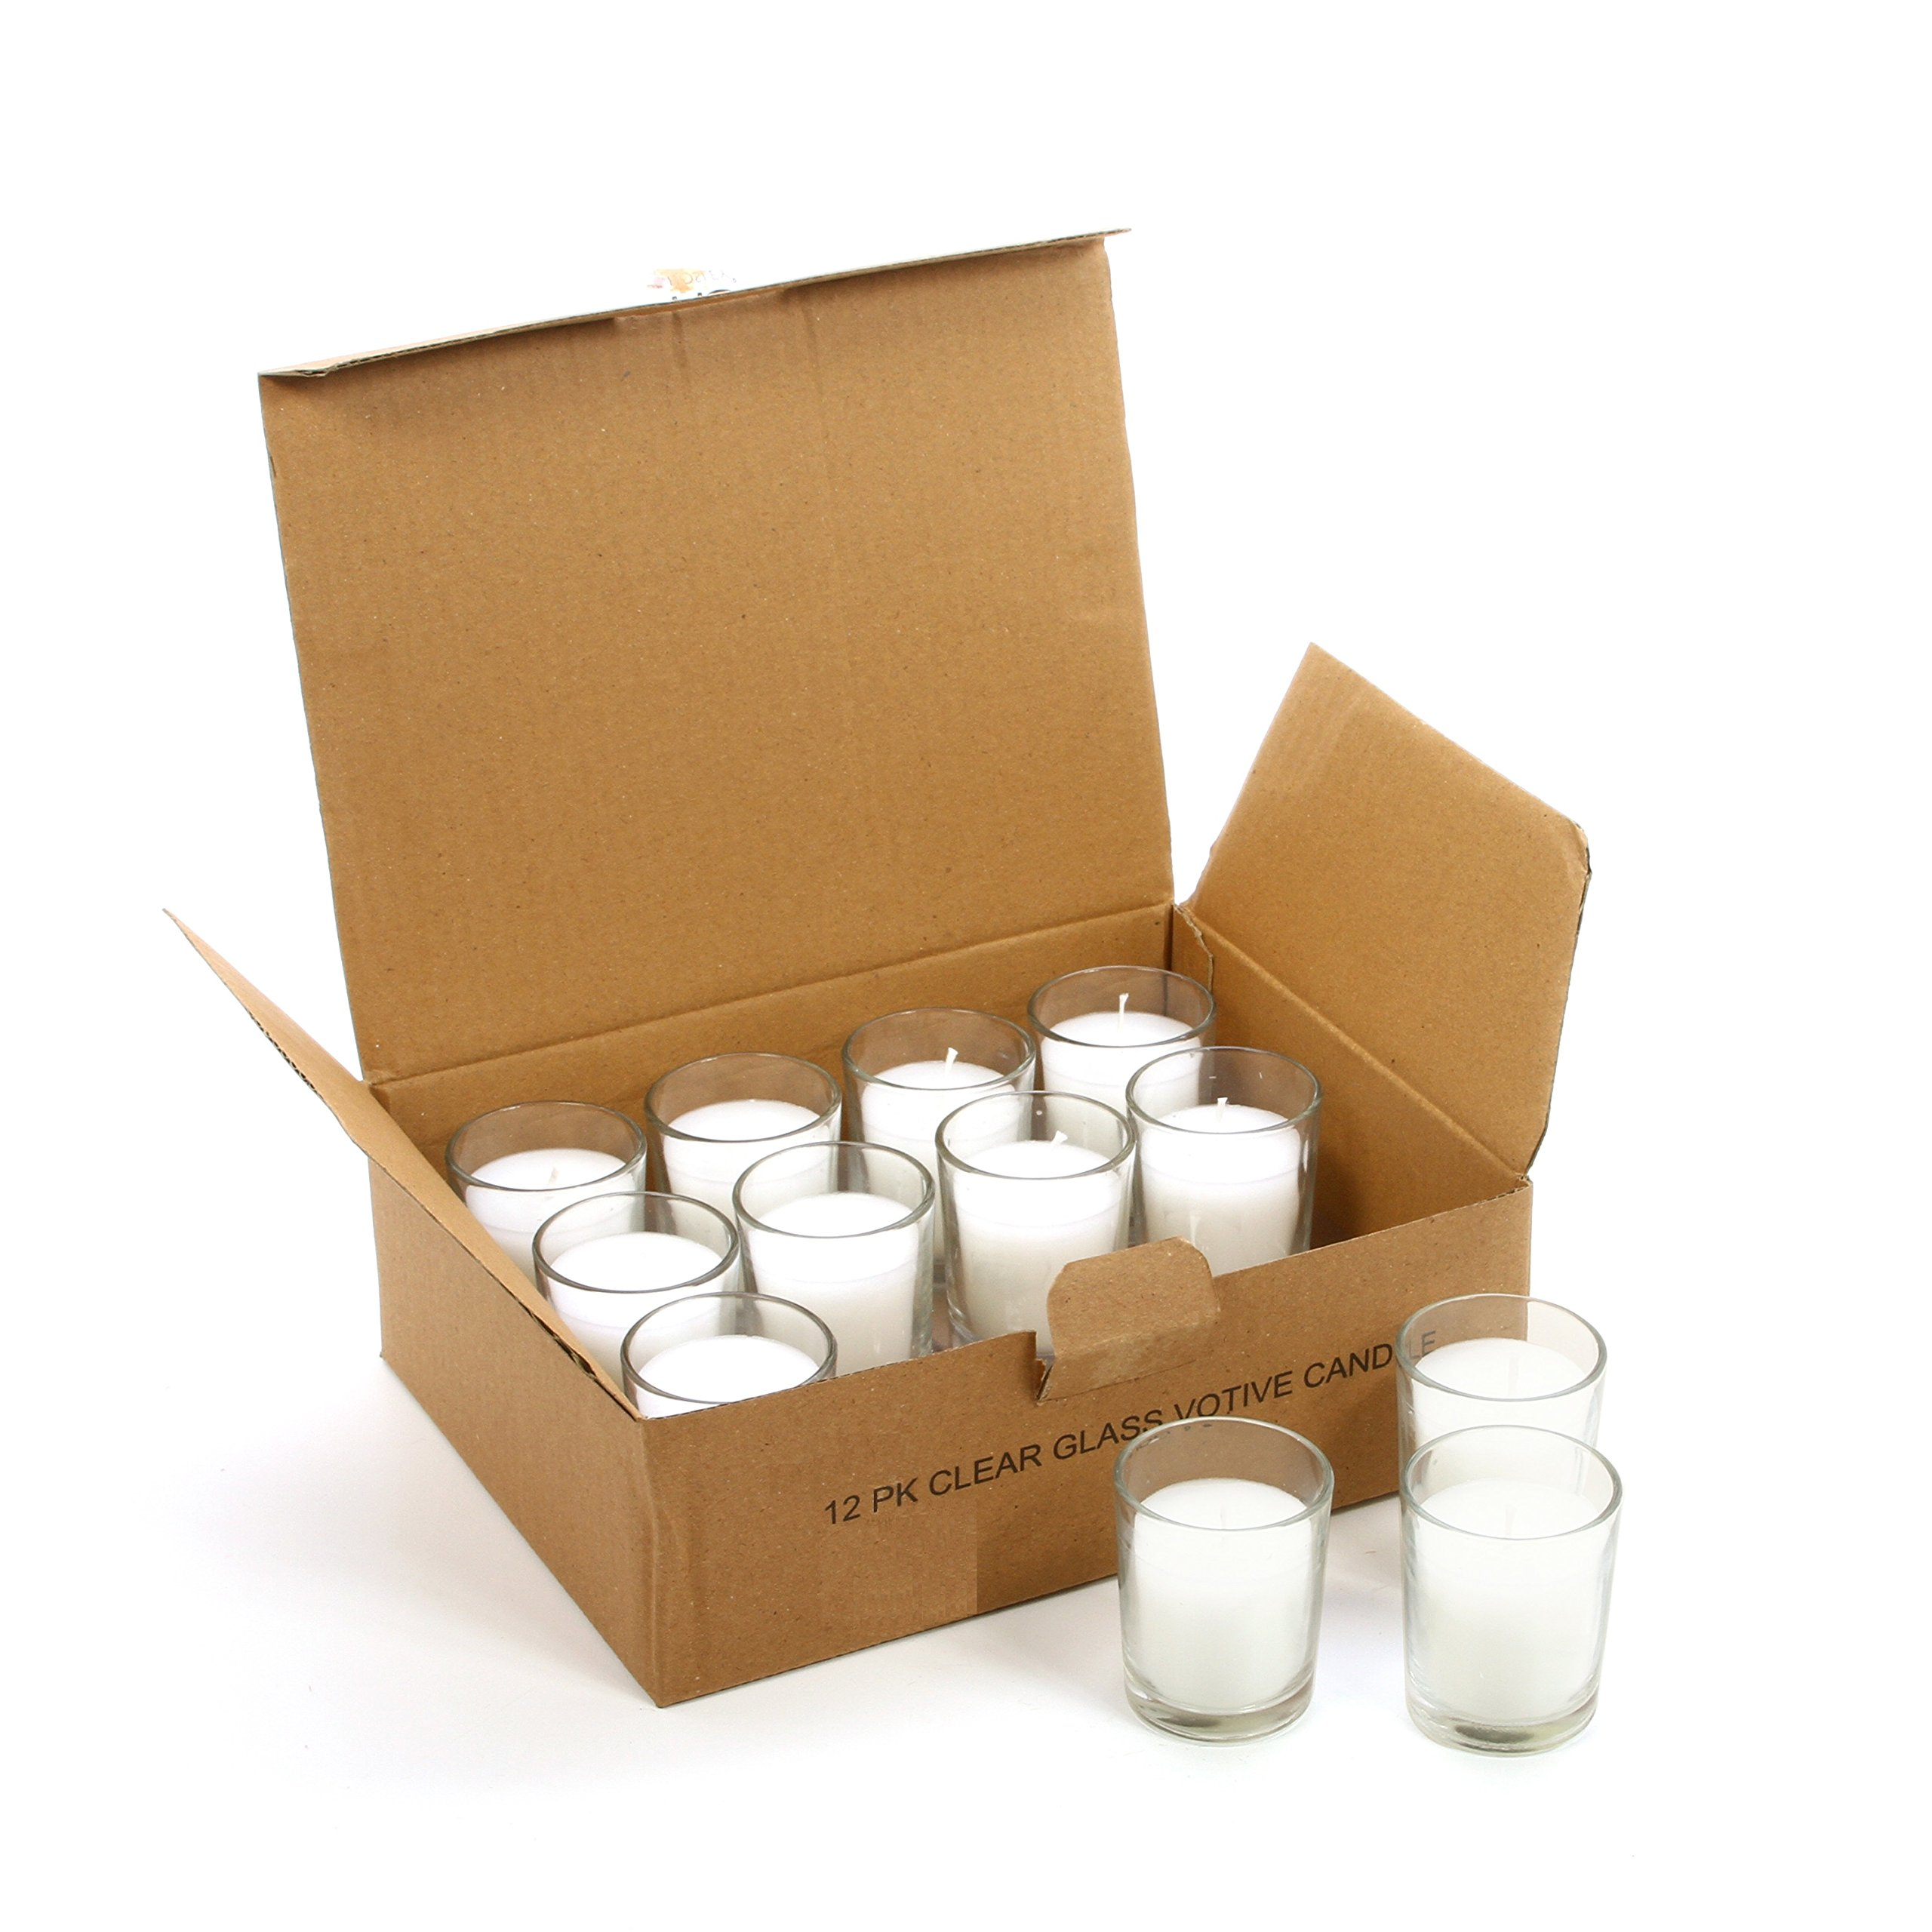 Hosley Set of 48 Unscented White Clear Glass Wax Votive Filled Candles. Hand Poured Vegetable Soy Wax Blend, Up to 15 Hour Burn Time. Ideal Gift or Use for Weddings, Aromatherapy, Party Favor O3 by Hosley